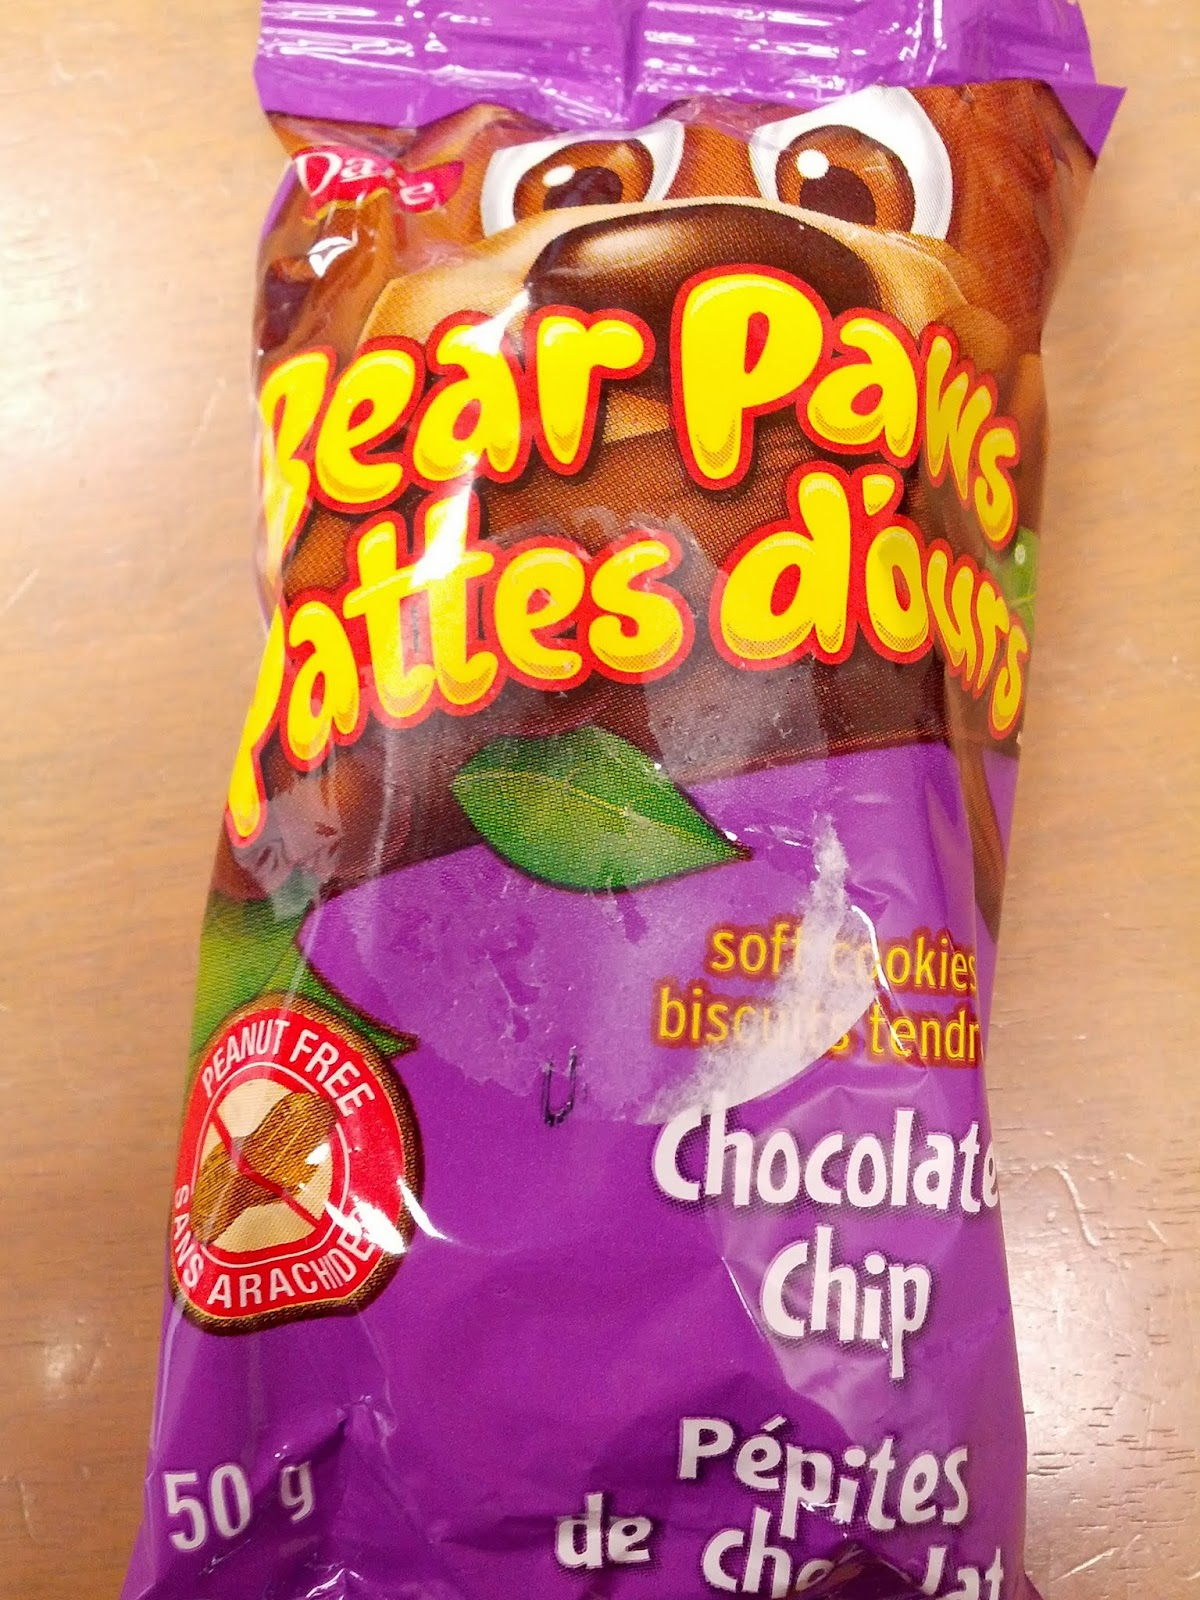 Vanbrosia dare chocolate chip bear paw for Jj fish and chips